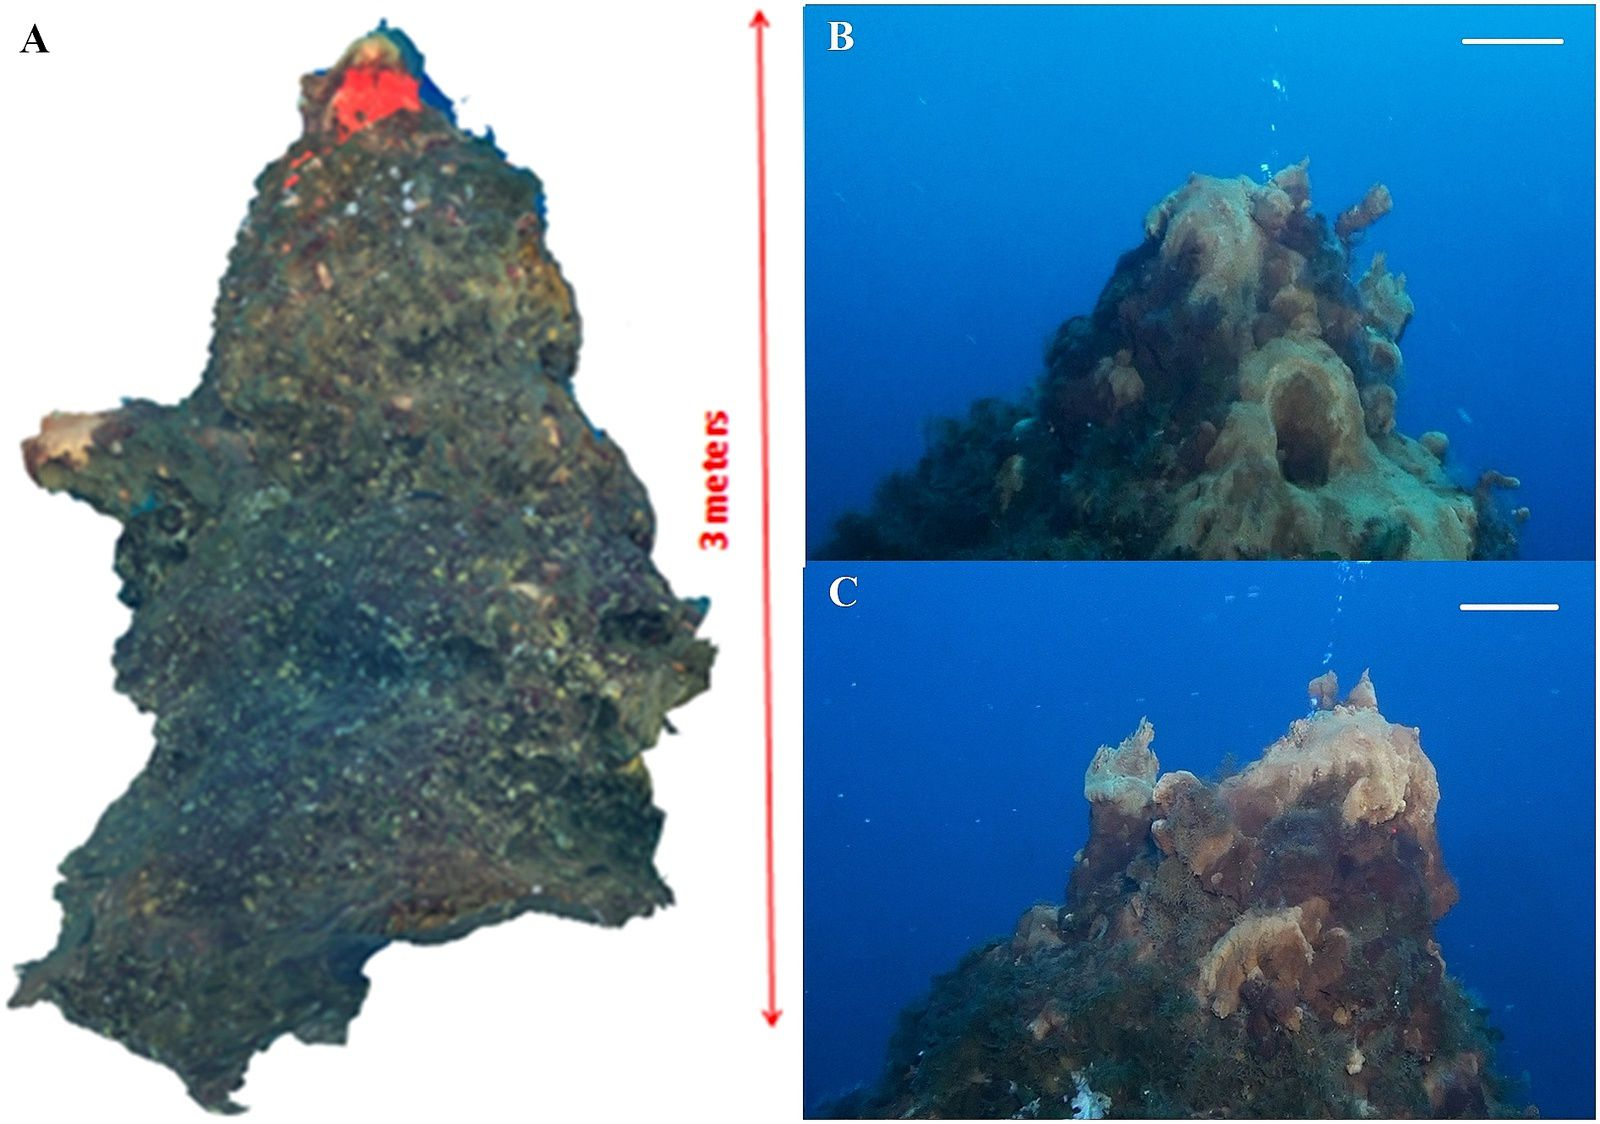 """Images of reconstructed chimneys, located in the """"Smoking Land"""" - A. HD-video reconstruction of the chimney - B. Underwater image of the anterior side - C. Underwater image of the posterior side, with yellowish deposits and the emission of bubbles - the scale bar is 20 cm for the foreground - Extract of the document cited in source."""